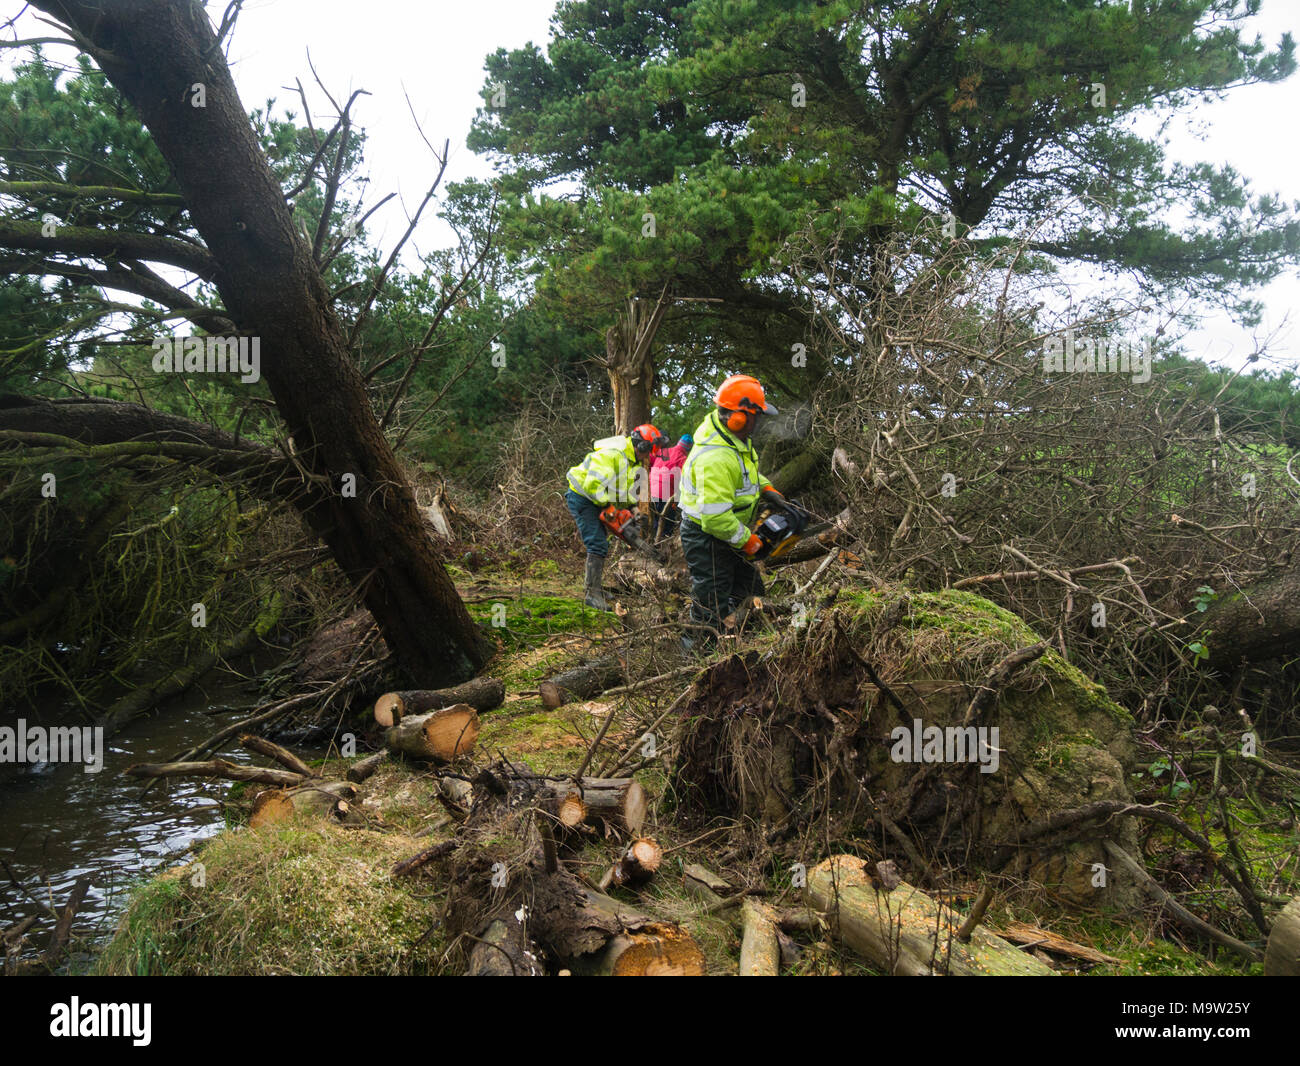 Volunteers wearing safety clothing using chainsaws to clear the line of a new public footpath cutting down conifers blocking path - Stock Image